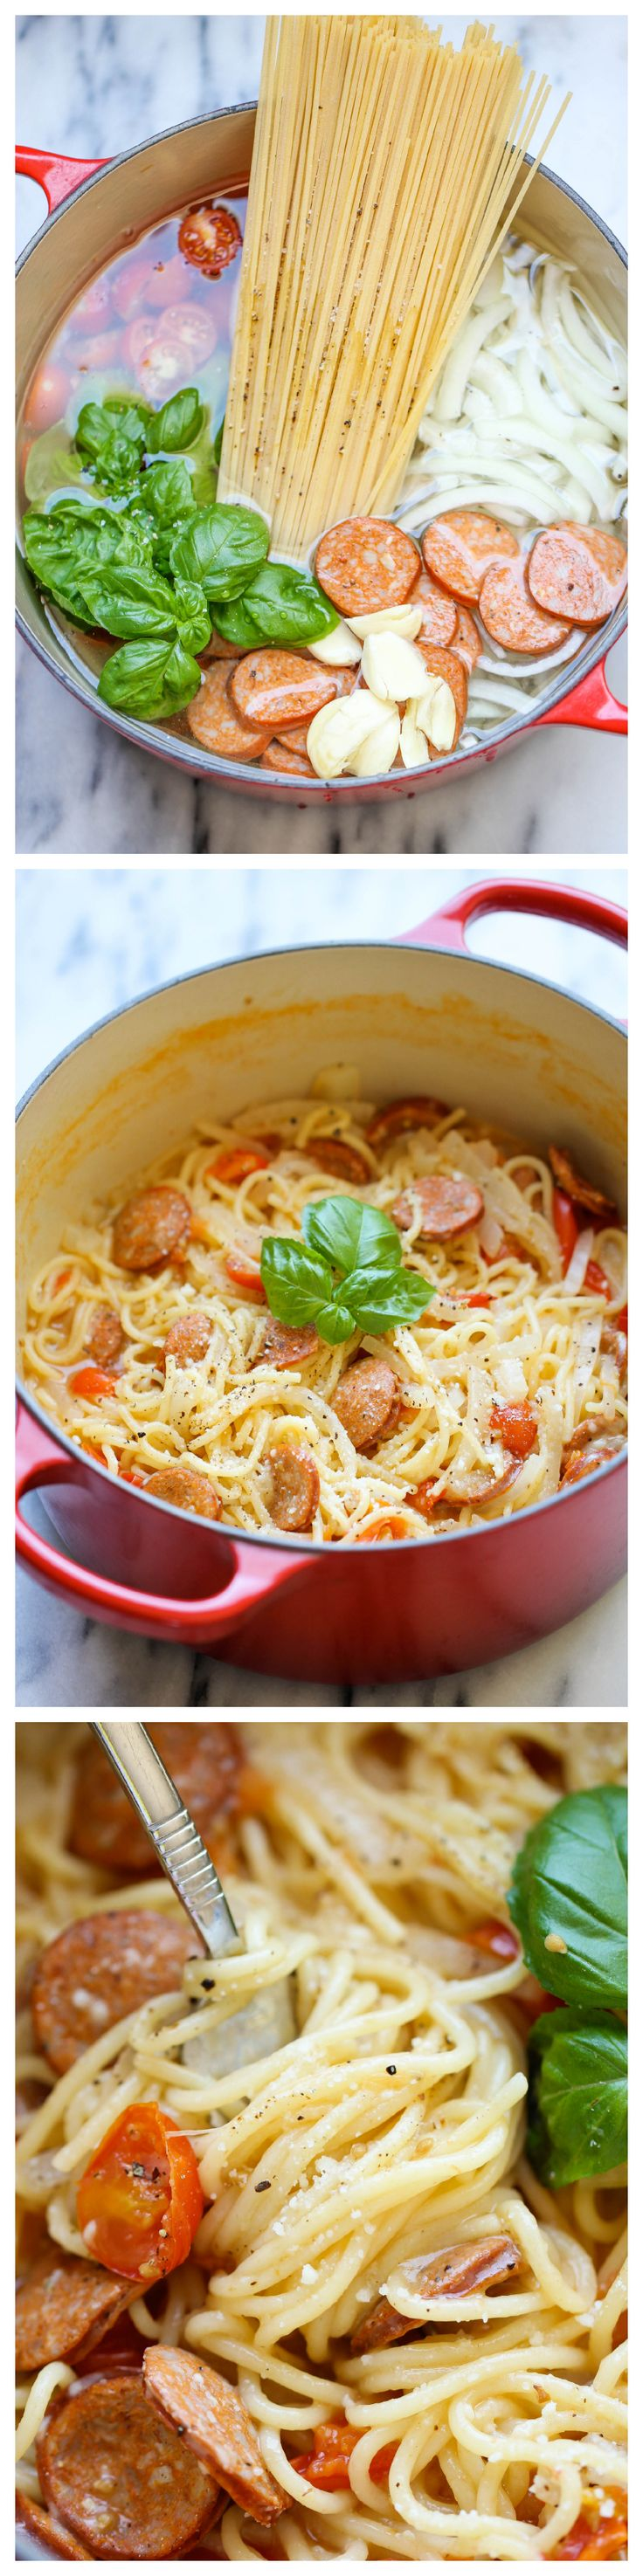 One Pot Pasta – The easiest, most amazing pasta you will ever make. Even the pasta gets cooked right in the pot. How easy is